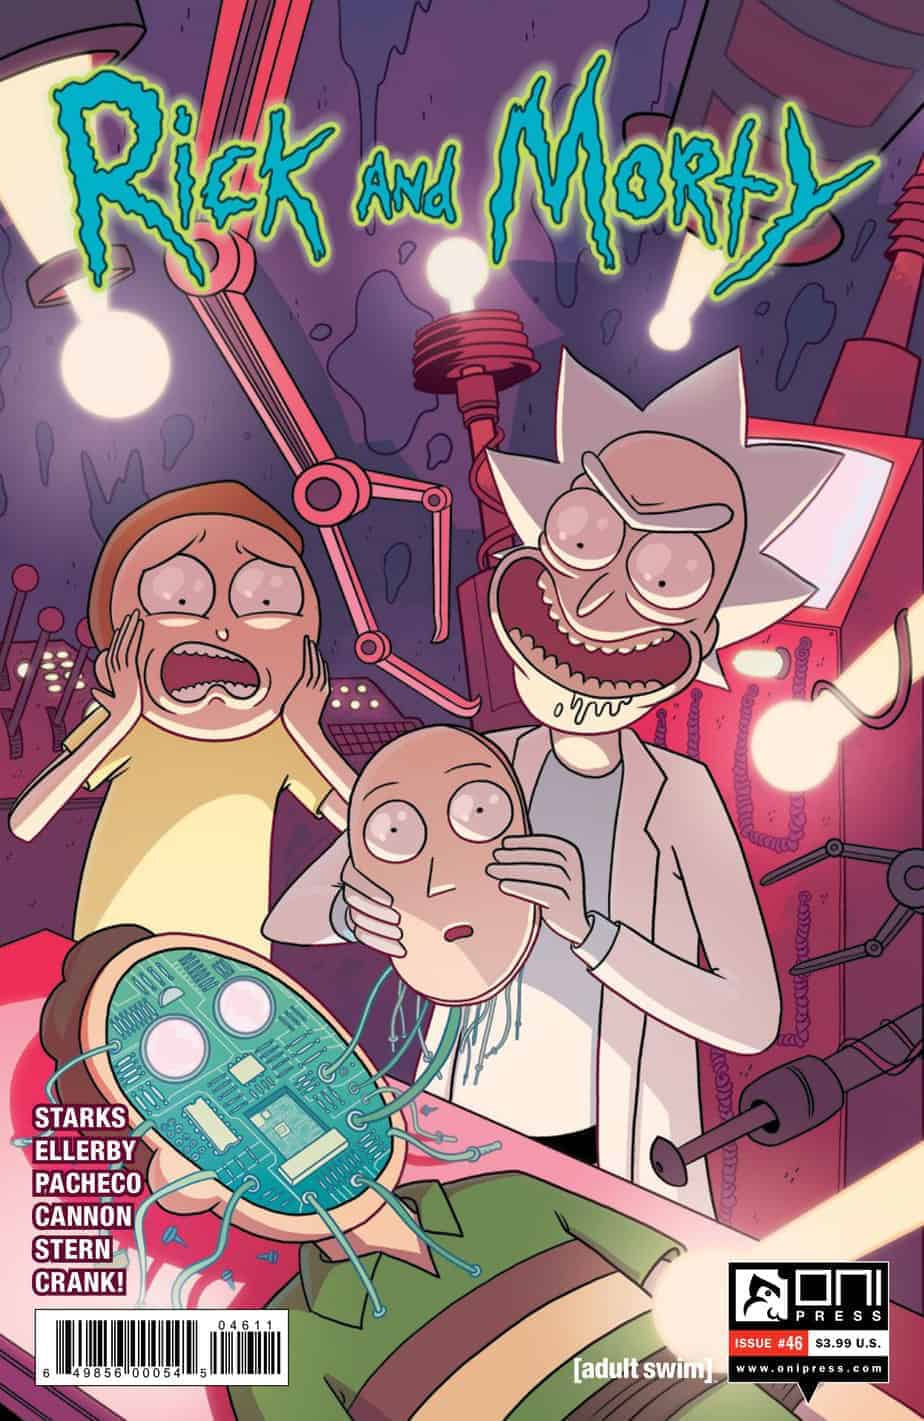 Rick and Morty™ #46 - Cover A